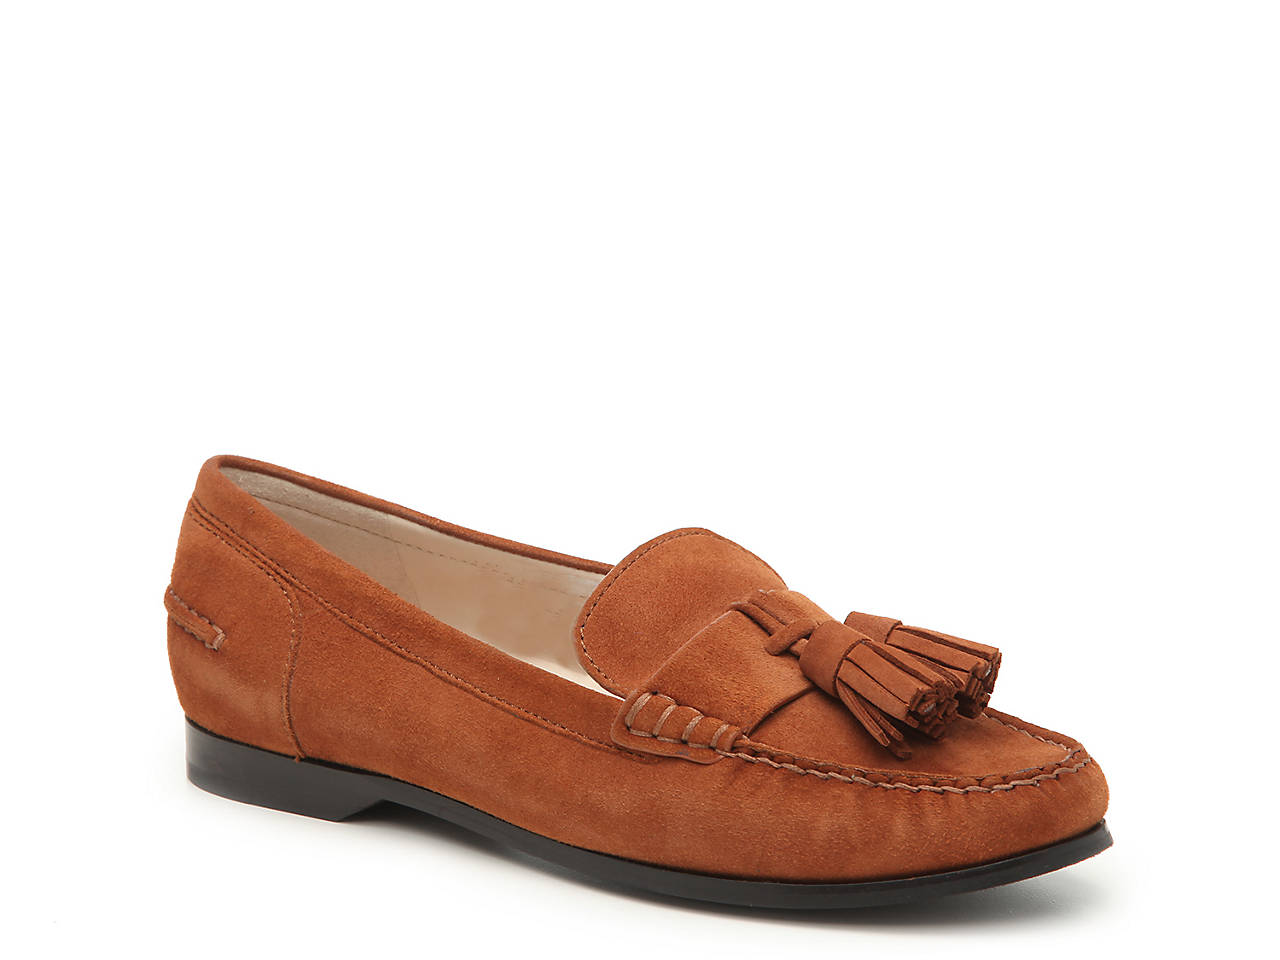 8f739d2b70a Cole Haan Emmons II Loafer Women s Shoes